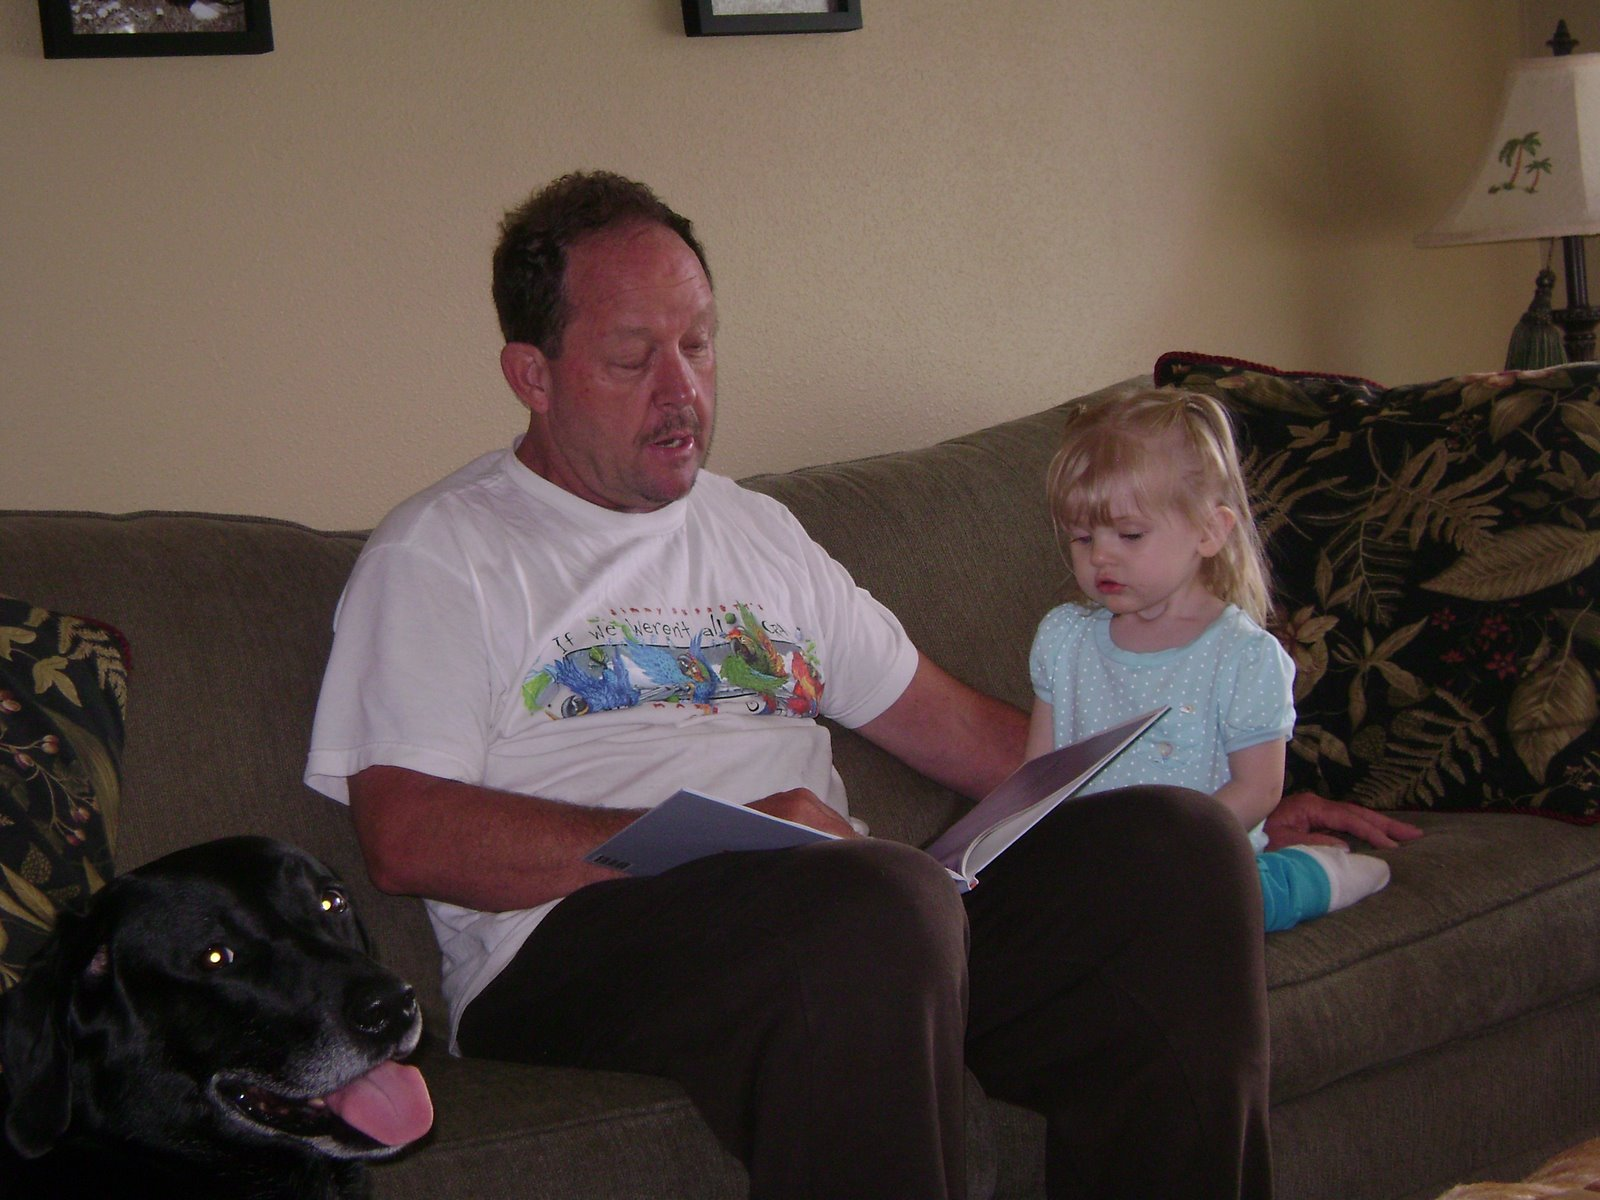 [fathers+day+2008+003.jpg]